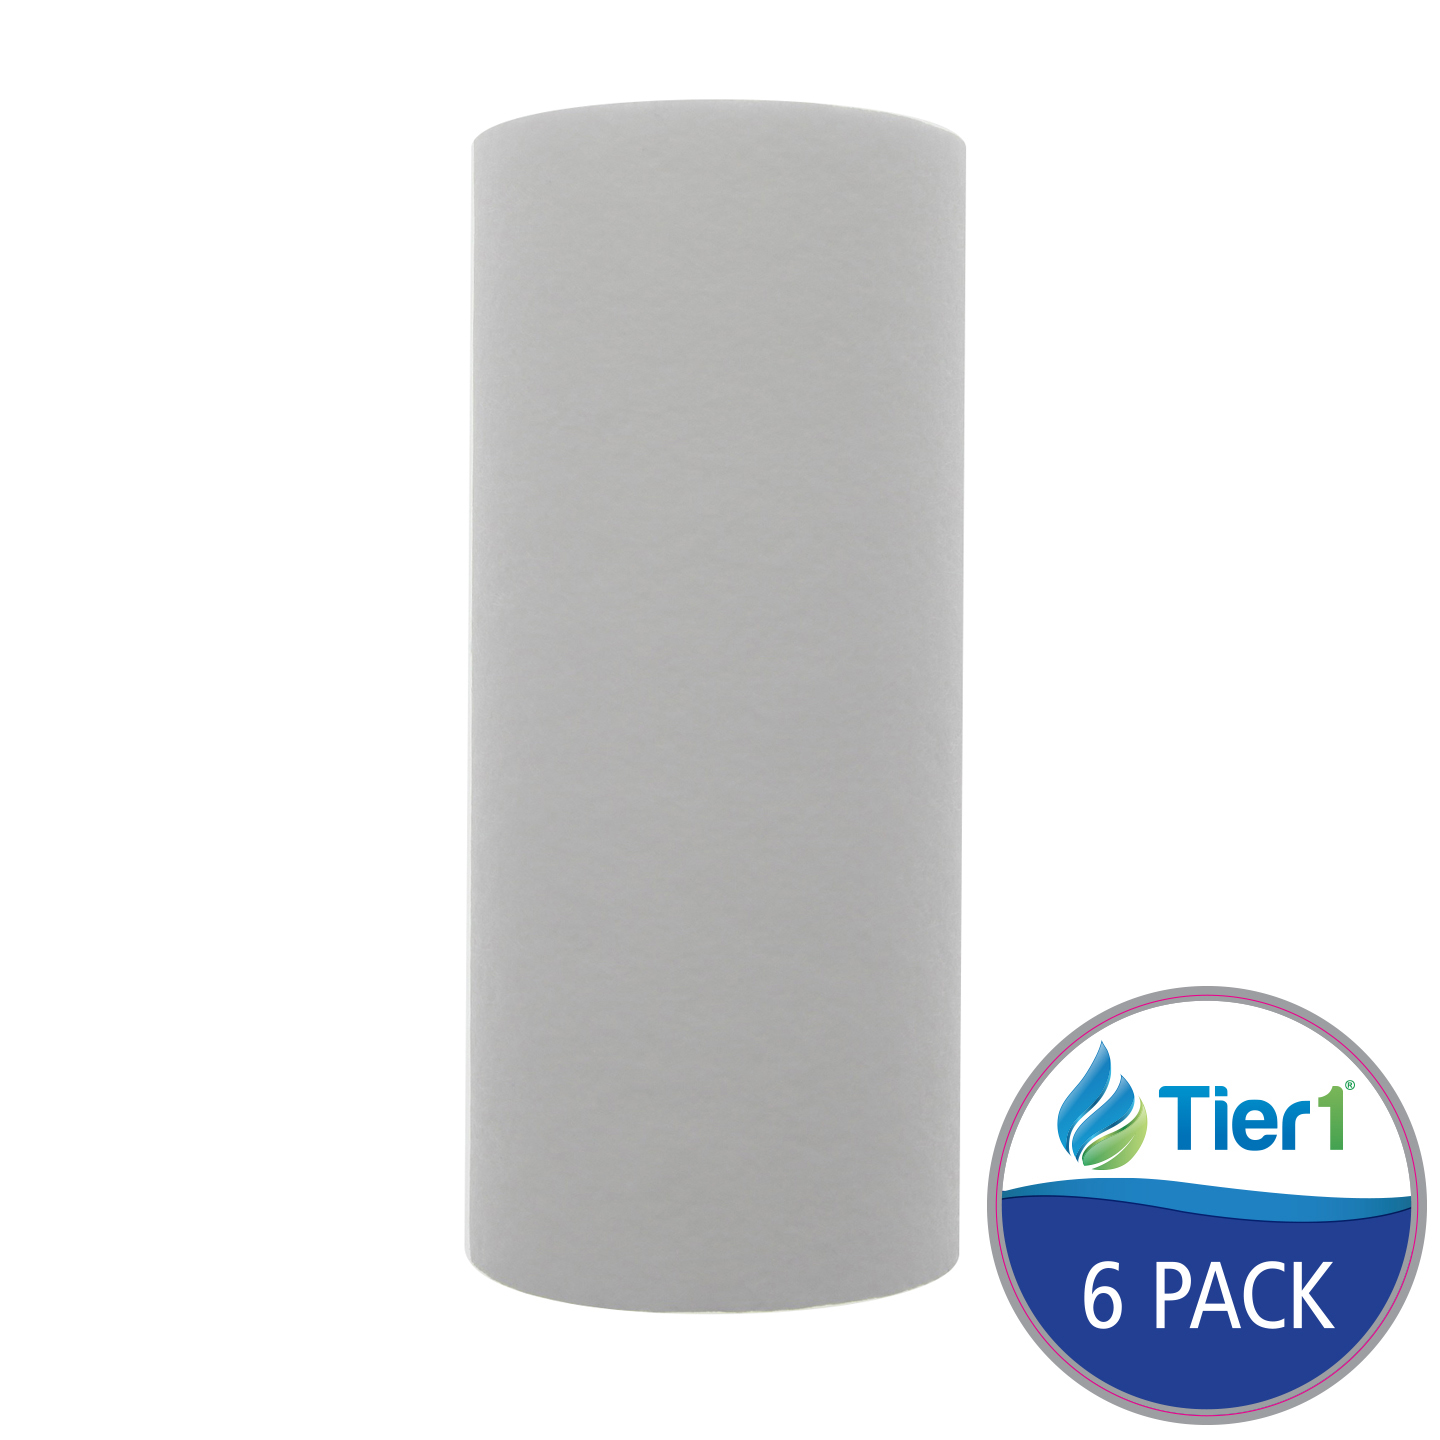 10 X 4.5 Spun Wound Polypropylene Replacement Filter by Tier1 (10 micron) (6-Pack) TIER1_P10_10BB_6_PACK